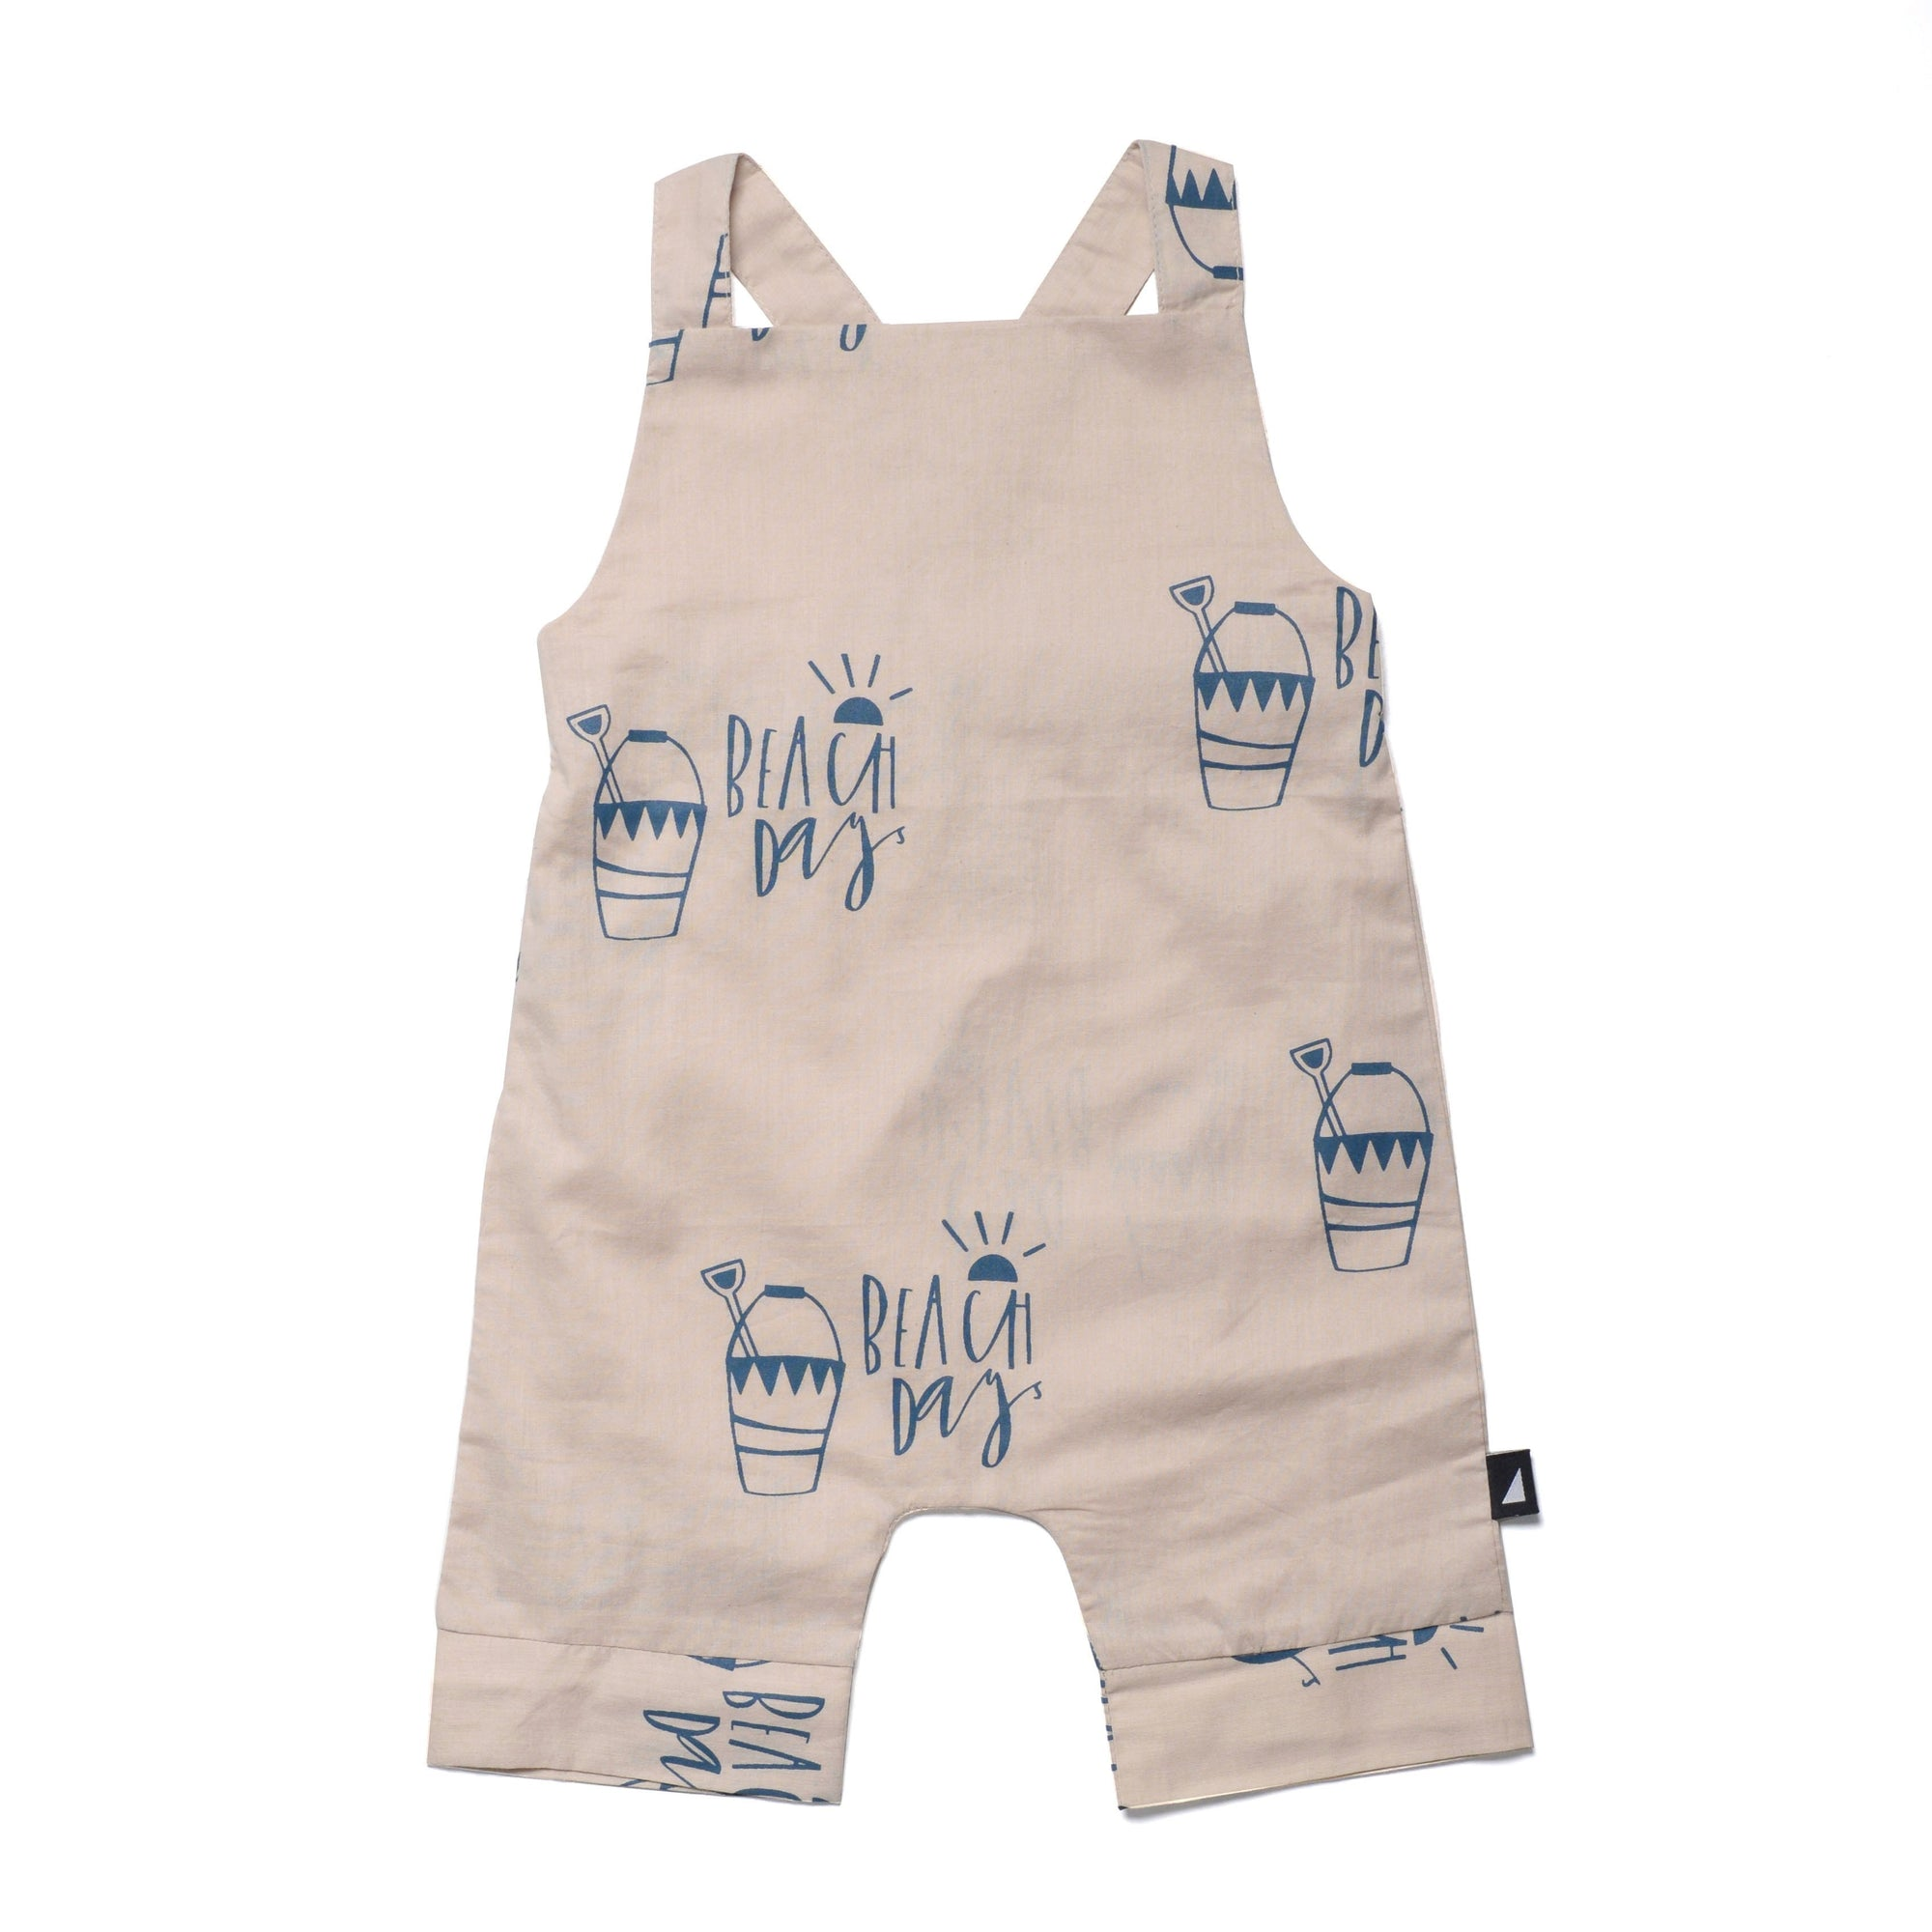 0-3 Months Anarkid Organic Cotton Beach Day Woven Overalls - Naked Baby Eco Boutique